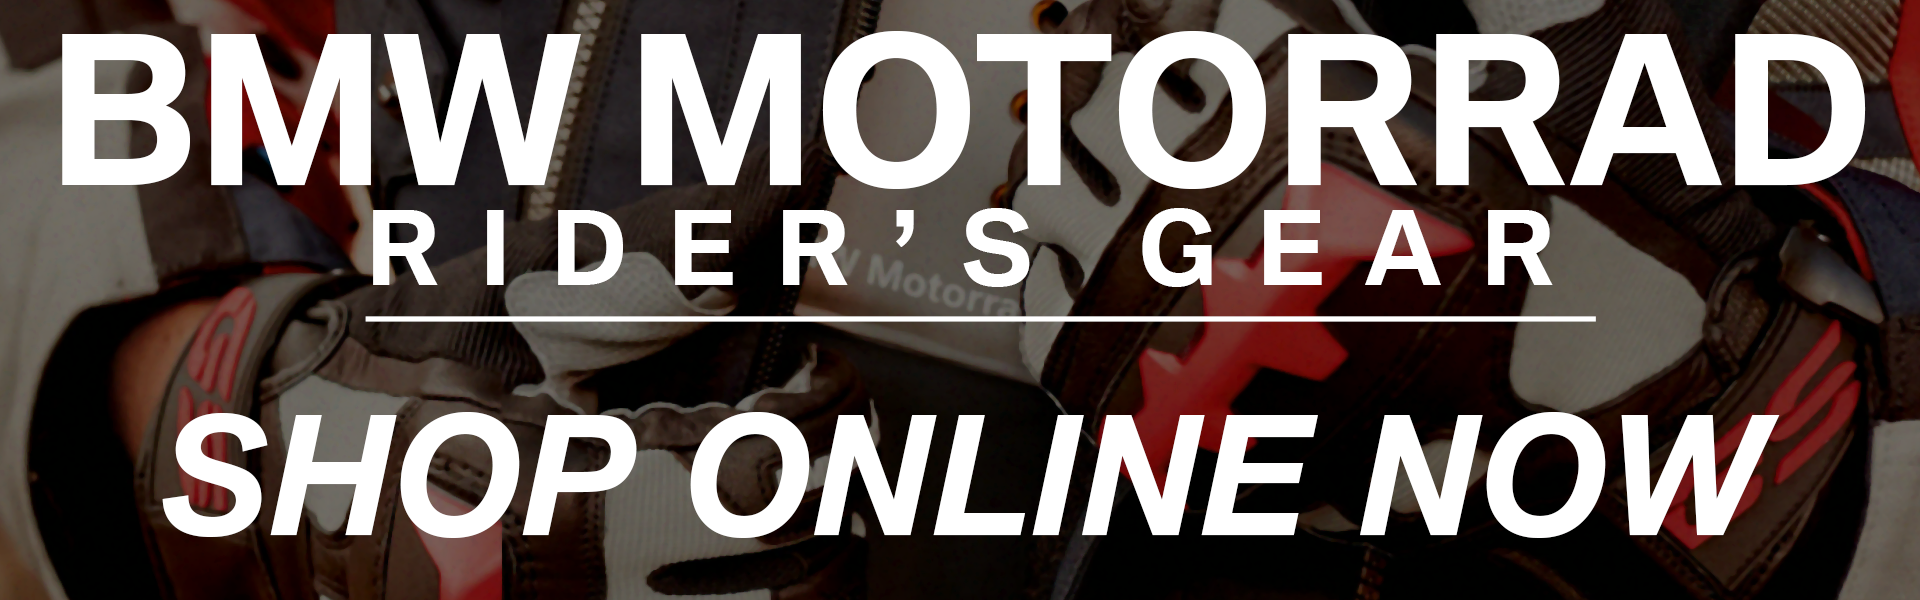 BMW Motorrad Rider Gear Now Available Online - Shop For The Best, We Ship To Direct To Your Door